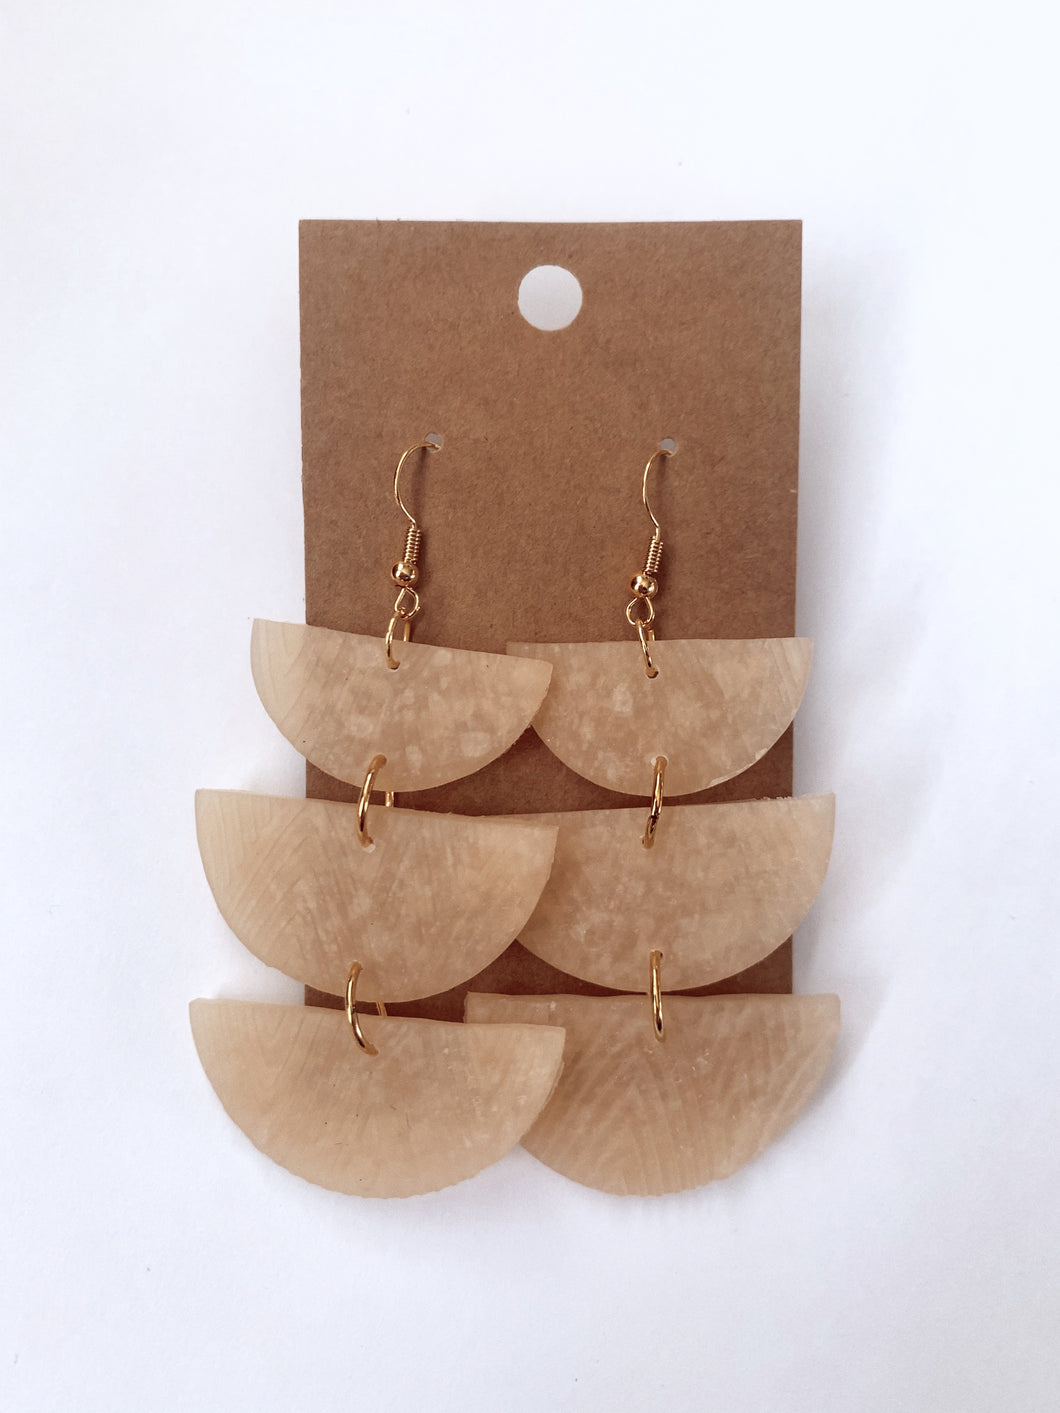 Translucent Textured Dangle Clay Earrings